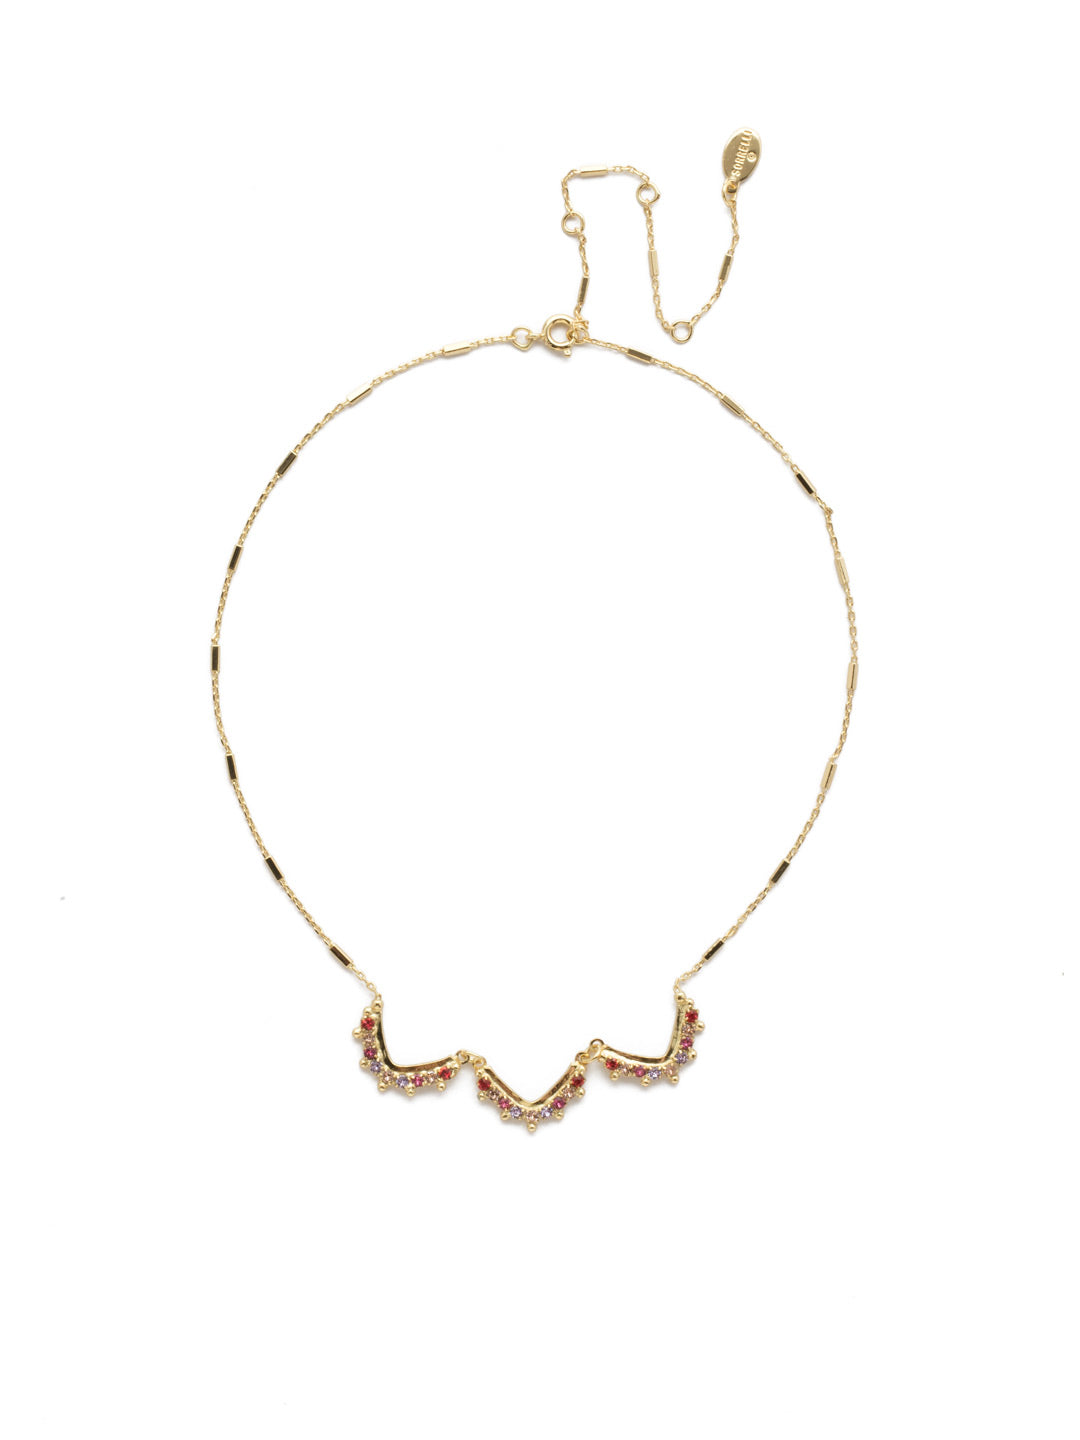 Antoinette Pendant Necklace - NEK12BGISS